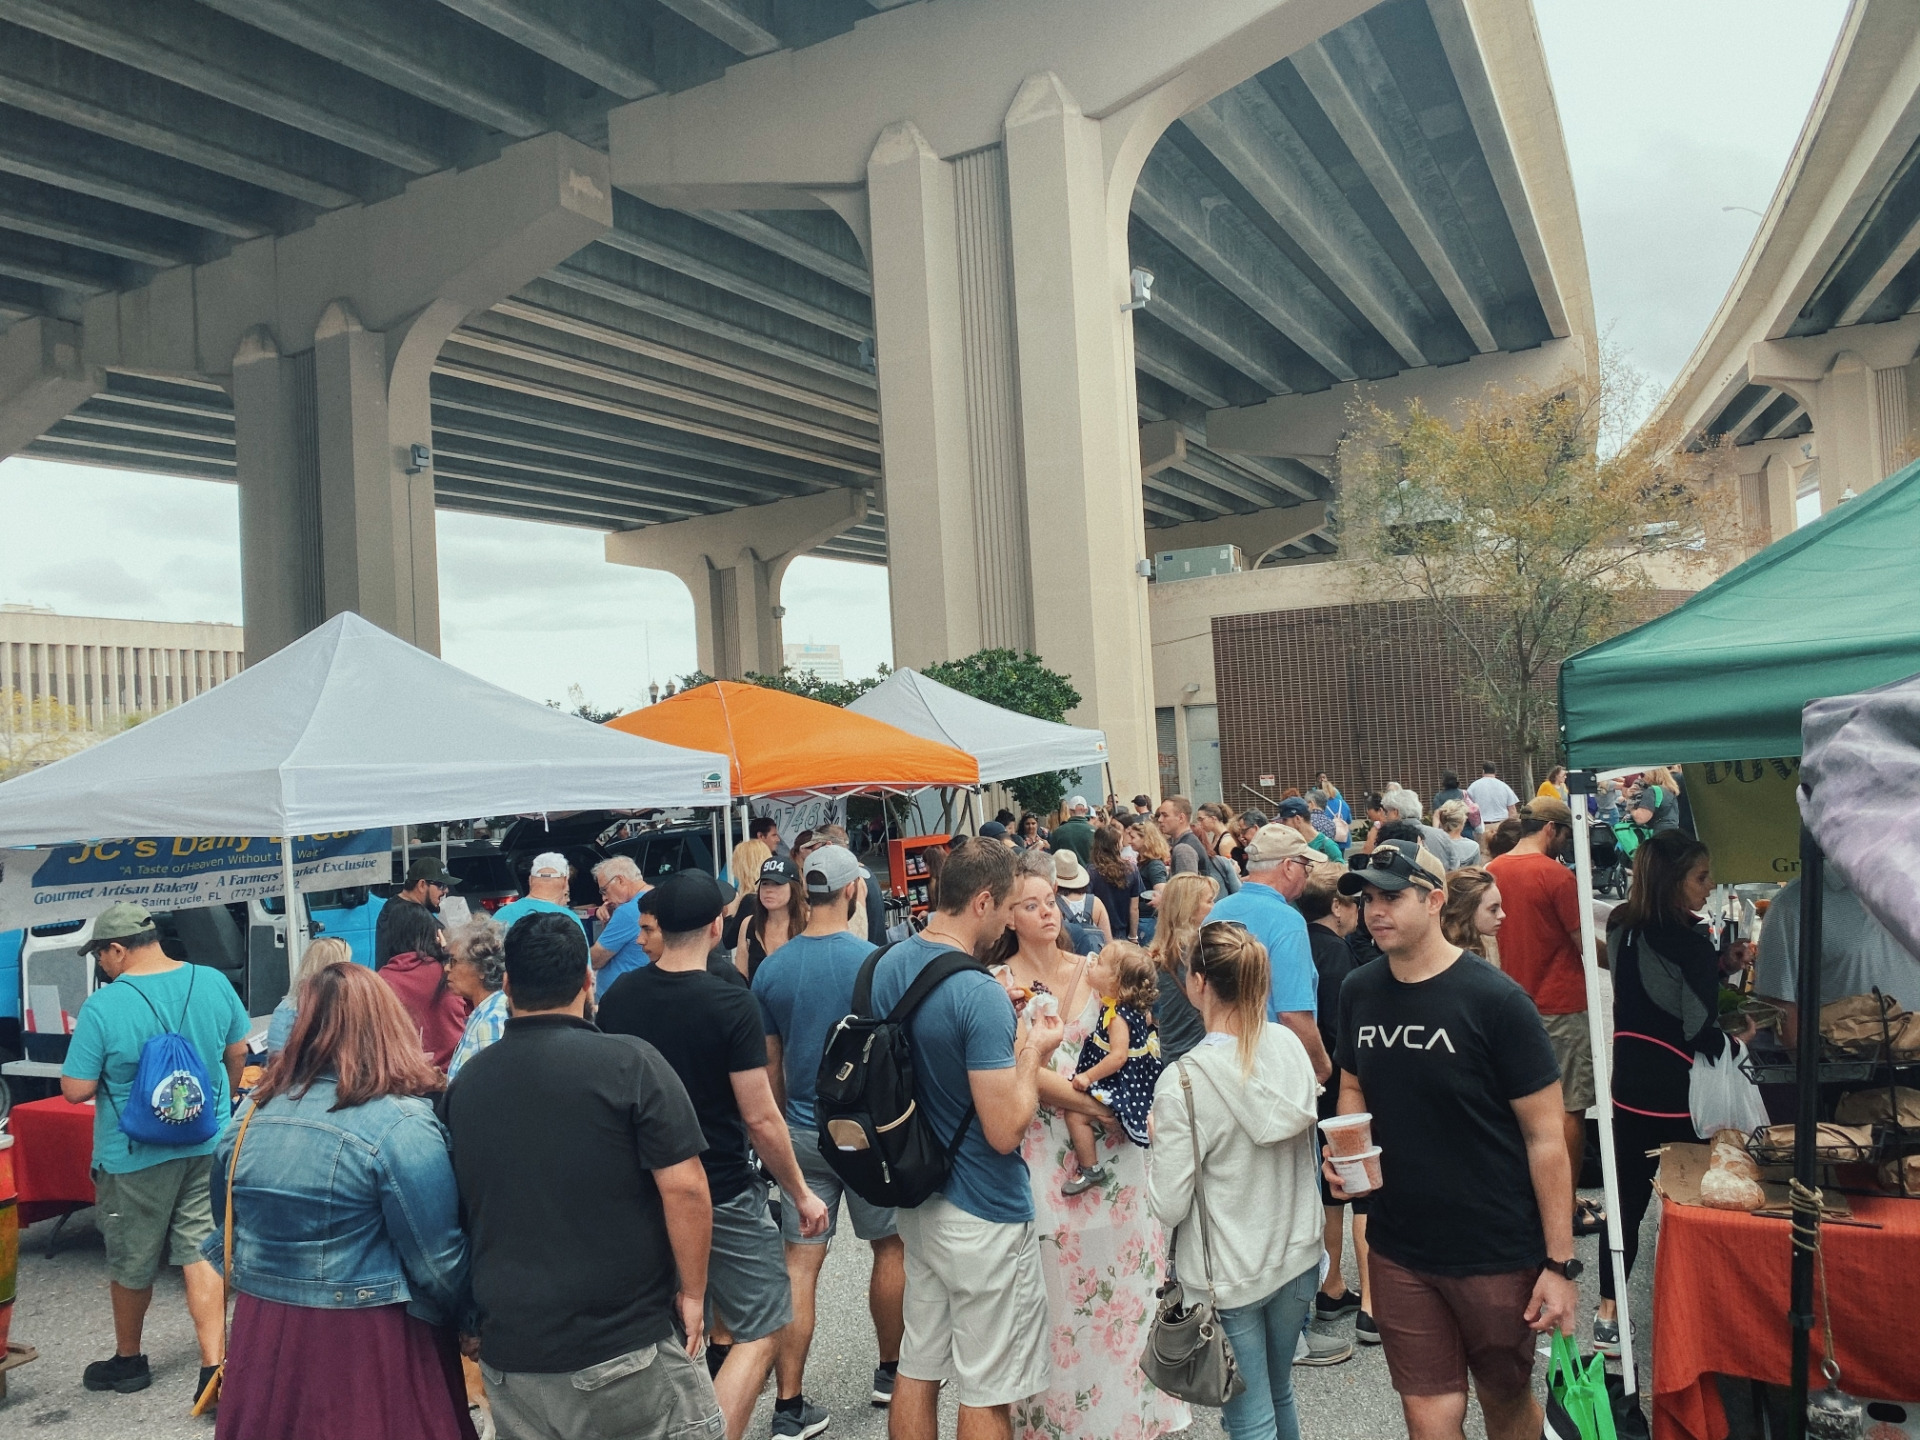 enhance our neighborhood.  farmers market arts market events in jacksonville jacksonville events things to do jacksonville local events fun things food trucks jacksonville arts live music